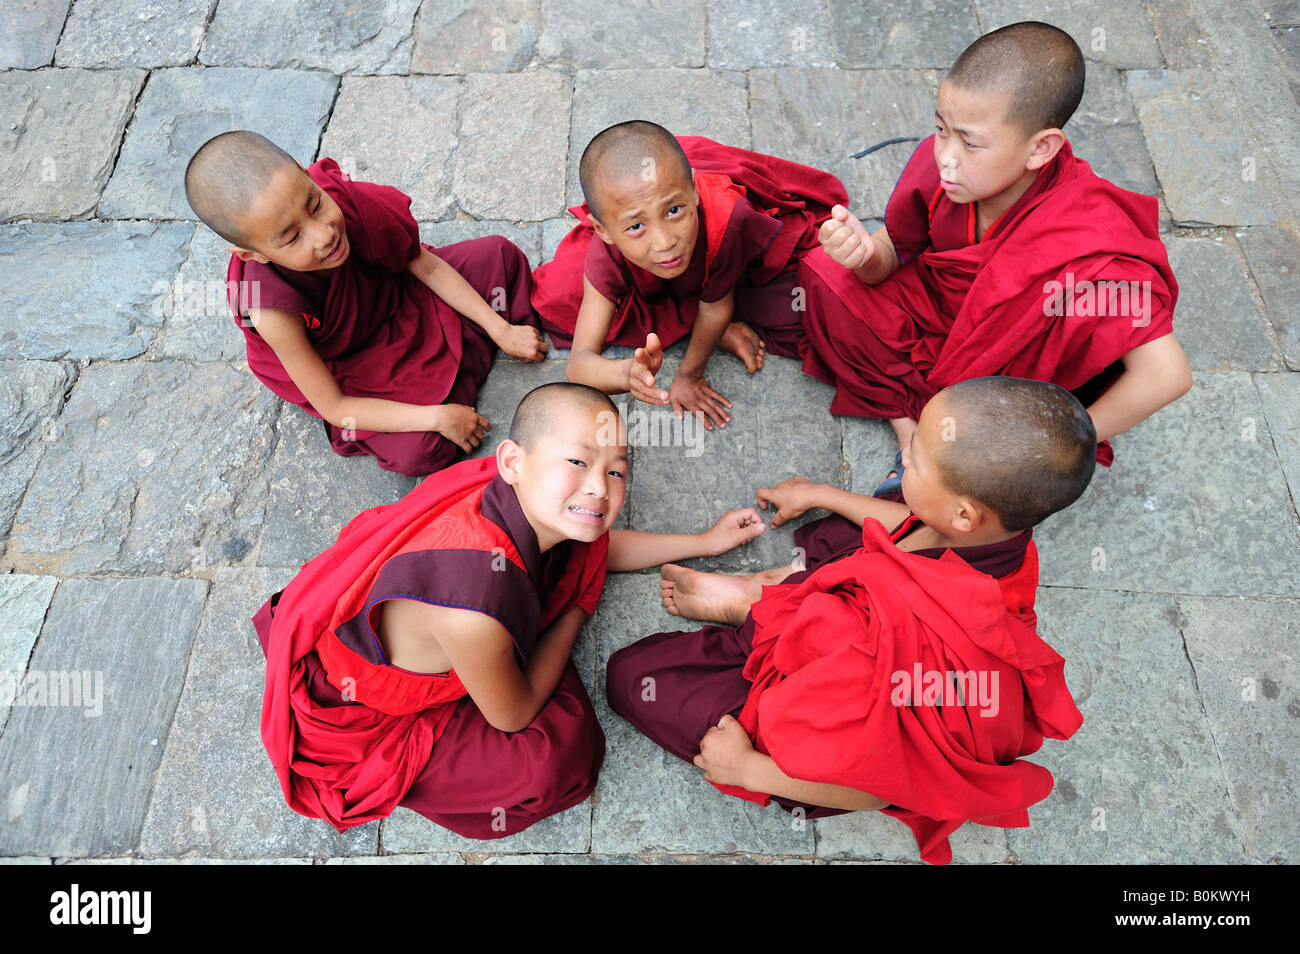 Young Bhutanese Buddhist monks resting from studies at the Wangdue Phodrang Monastry Dzong  in central Bhutan. Stock Photo